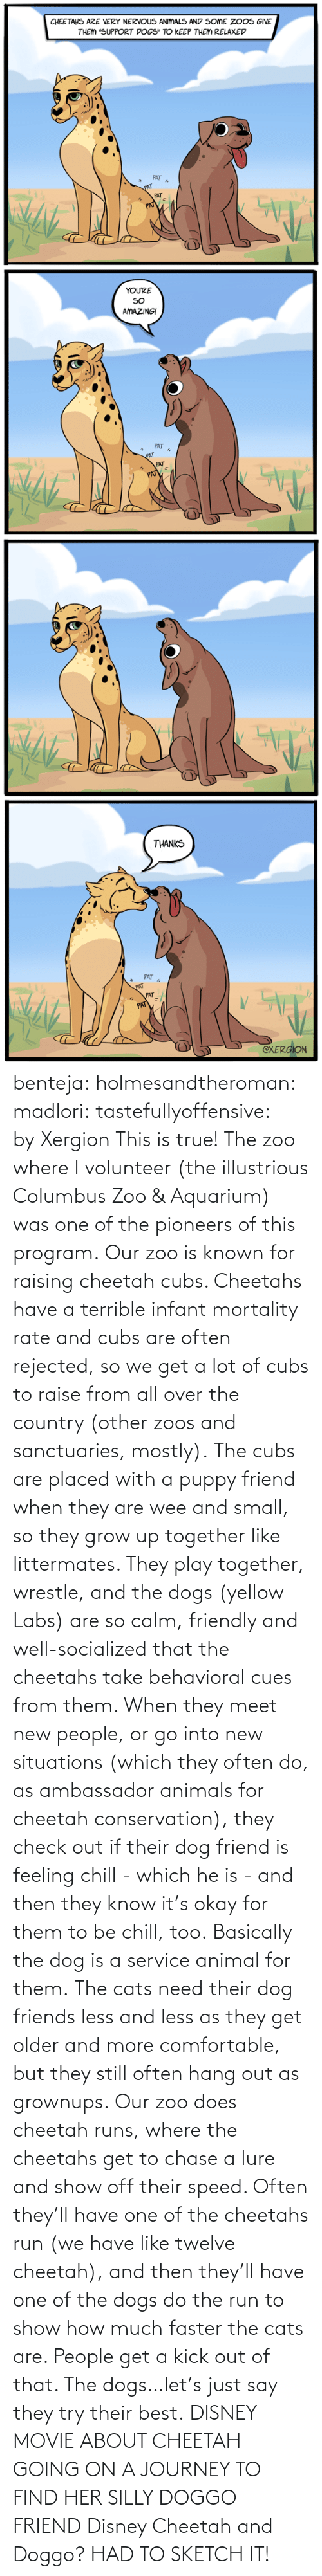 Conservation: benteja:  holmesandtheroman:  madlori:  tastefullyoffensive: by Xergion This is true! The zoo where I volunteer (the illustrious Columbus Zoo & Aquarium) was one of the pioneers of this program. Our zoo is known for raising cheetah cubs. Cheetahs have a terrible infant mortality rate and cubs are often rejected, so we get a lot of cubs to raise from all over the country (other zoos and sanctuaries, mostly). The cubs are placed with a puppy friend when they are wee and small, so they grow up together like littermates. They play together, wrestle, and the dogs (yellow Labs) are so calm, friendly and well-socialized that the cheetahs take behavioral cues from them. When they meet new people, or go into new situations (which they often do, as ambassador animals for cheetah conservation), they check out if their dog friend is feeling chill - which he is - and then they know it's okay for them to be chill, too. Basically the dog is a service animal for them. The cats need their dog friends less and less as they get older and more comfortable, but they still often hang out as grownups. Our zoo does cheetah runs, where the cheetahs get to chase a lure and show off their speed. Often they'll have one of the cheetahs run (we have like twelve cheetah), and then they'll have one of the dogs do the run to show how much faster the cats are. People get a kick out of that. The dogs…let's just say they try their best.   DISNEY MOVIE ABOUT CHEETAH GOING ON A JOURNEY TO FIND HER SILLY DOGGO FRIEND  Disney Cheetah and Doggo? HAD TO SKETCH IT!